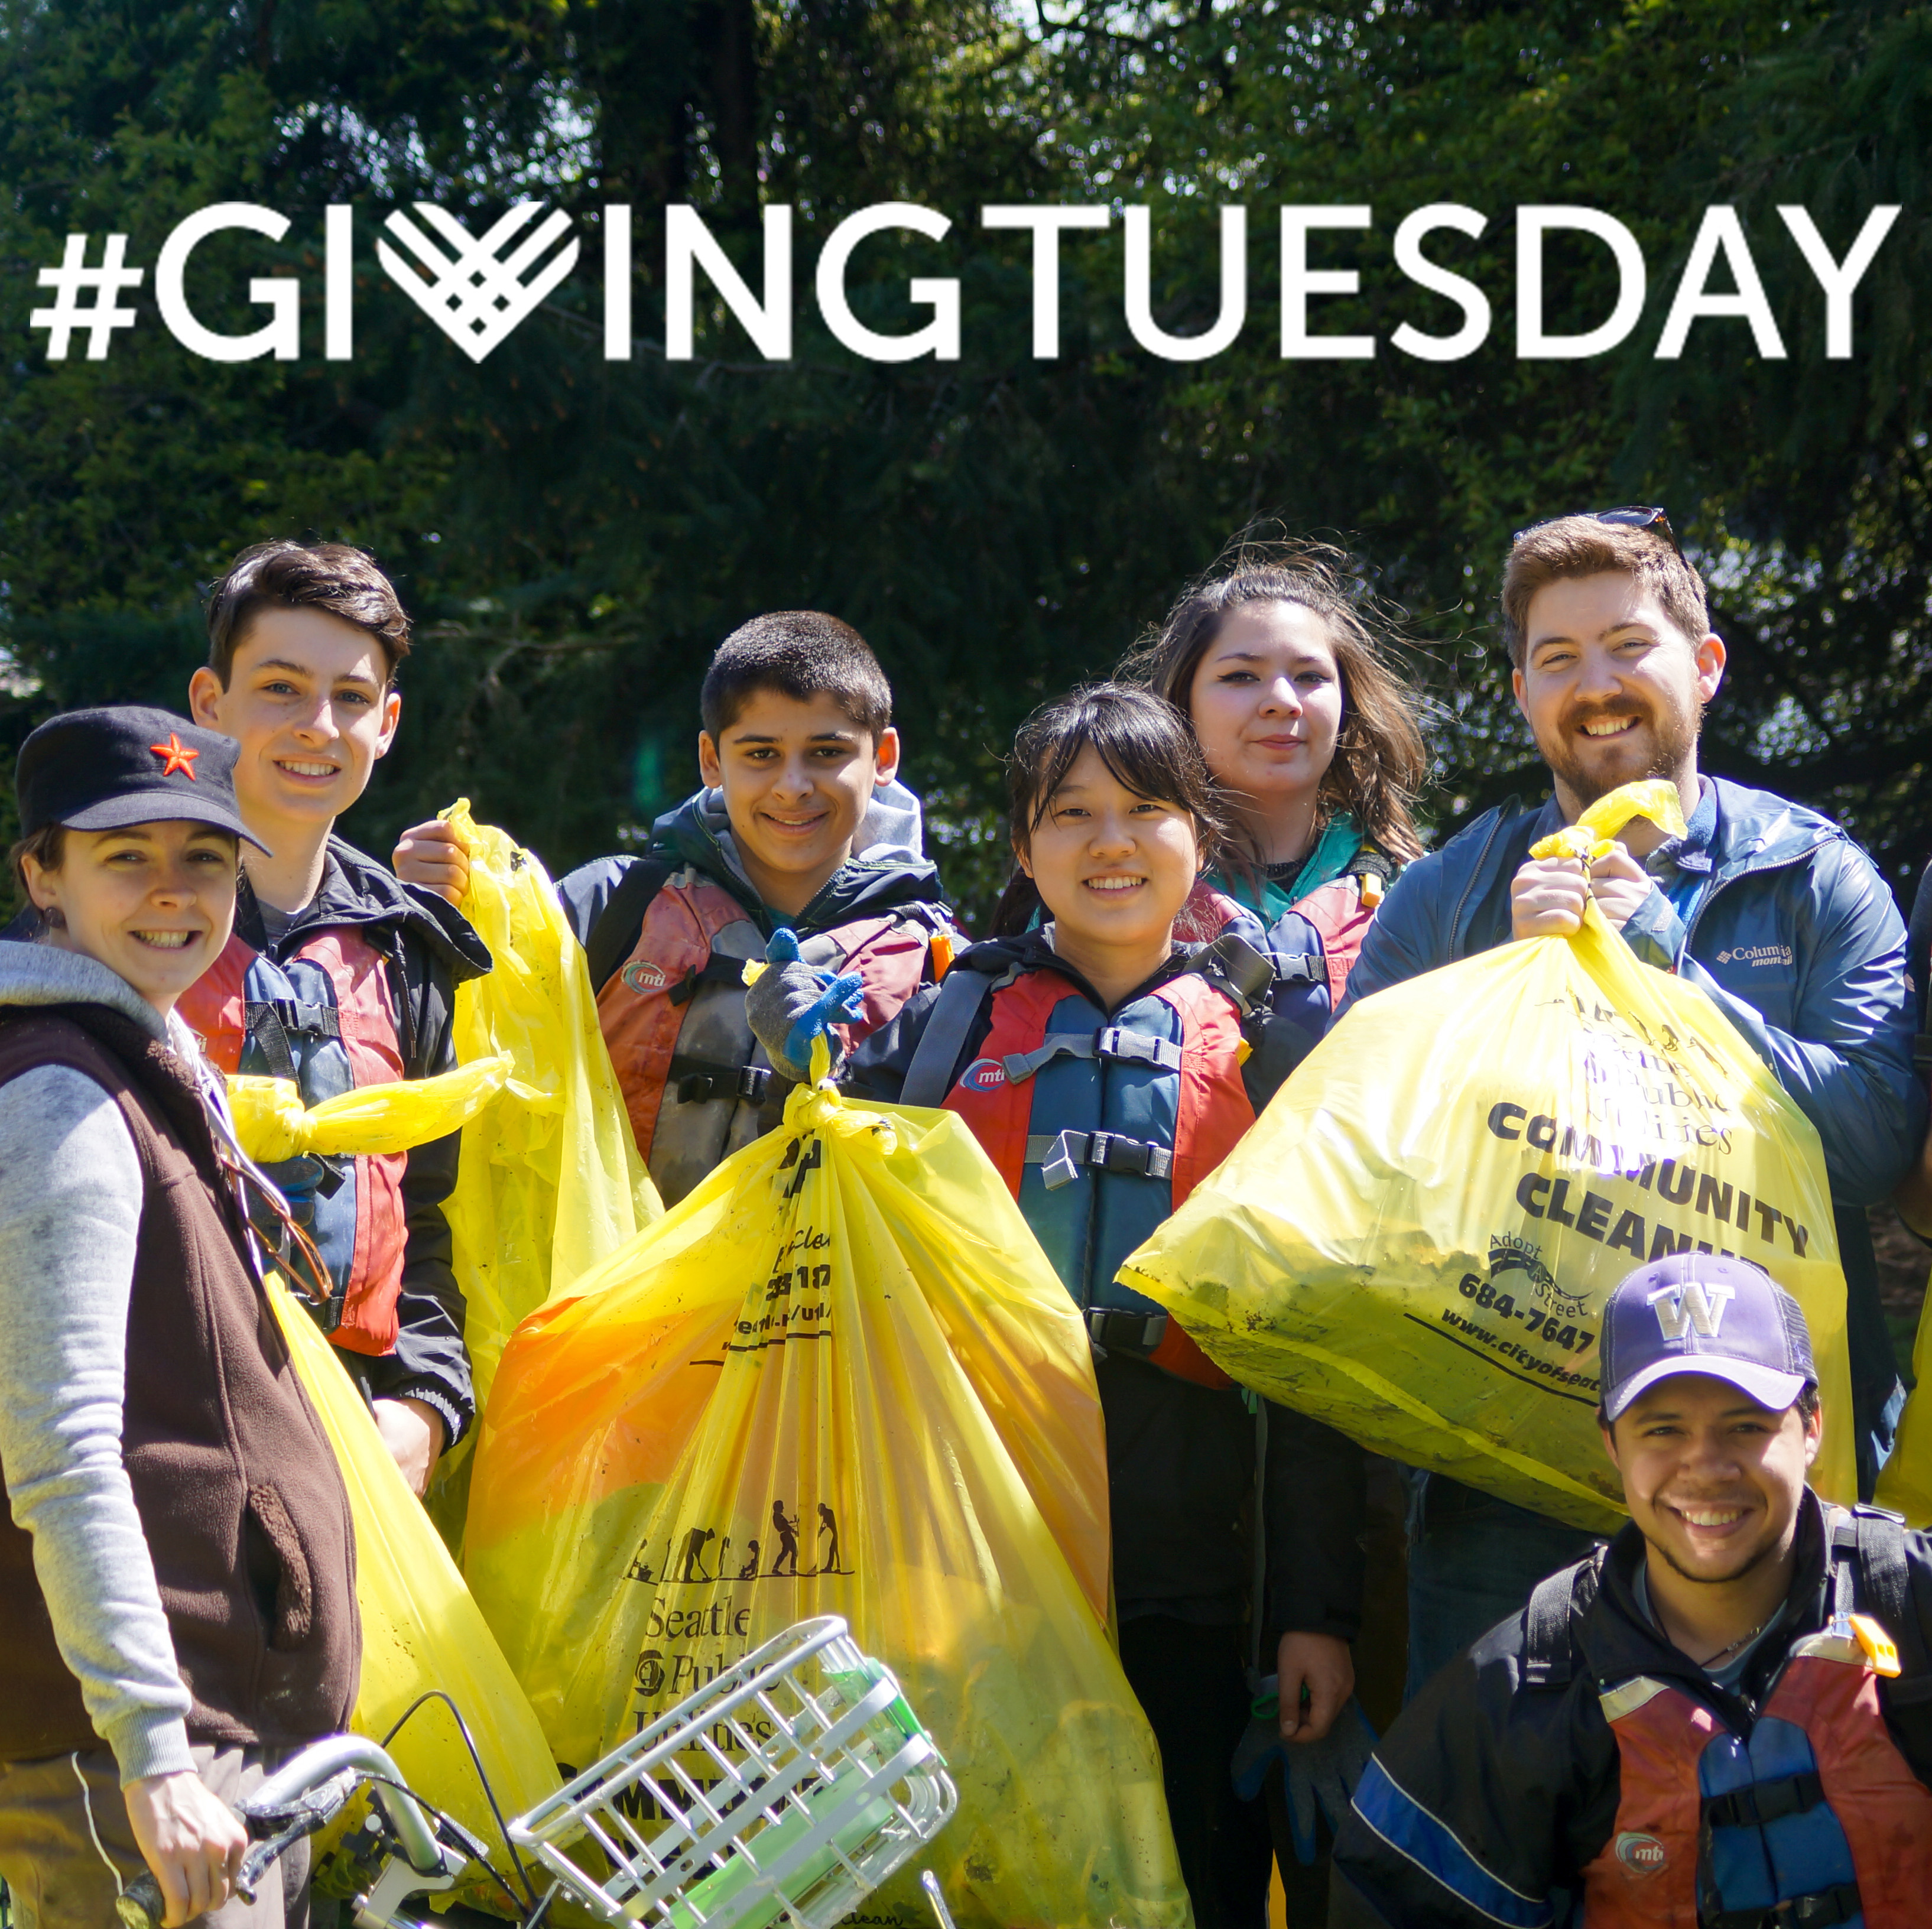 The Giving Tuesday logo appears over an image of volunteers at a cleanup holding trash bags and smiling at the camera.